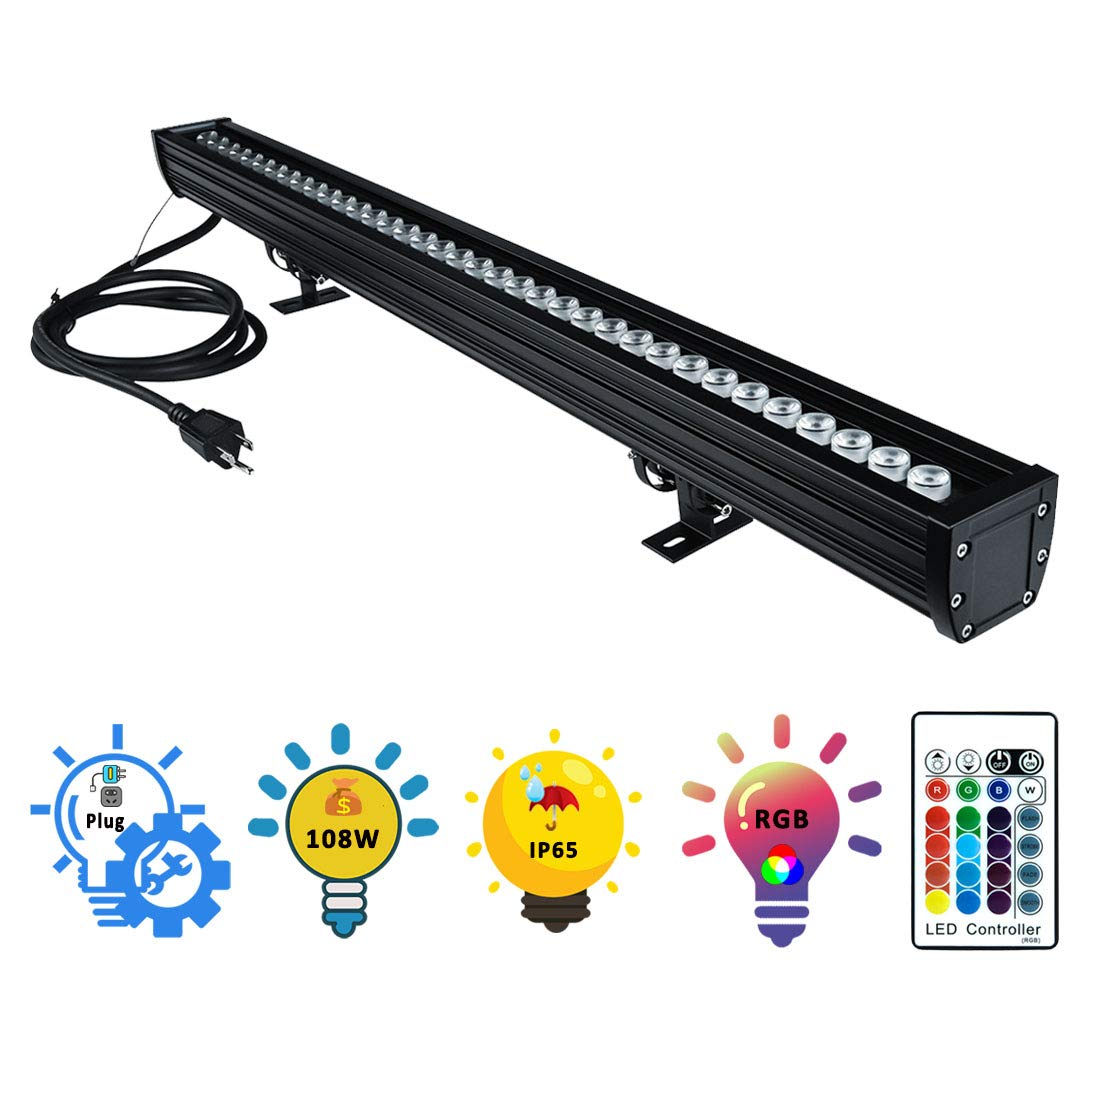 Wall Washer LED Lights, 108W RGBW Color Changing LED Strip Lights with RF Remote,120V, 3.2ft/40''Linear RGB LED Lights Bar for Outdoor/Indoor Lighting Projects Carnival Party Stage Casinos Bar Decor